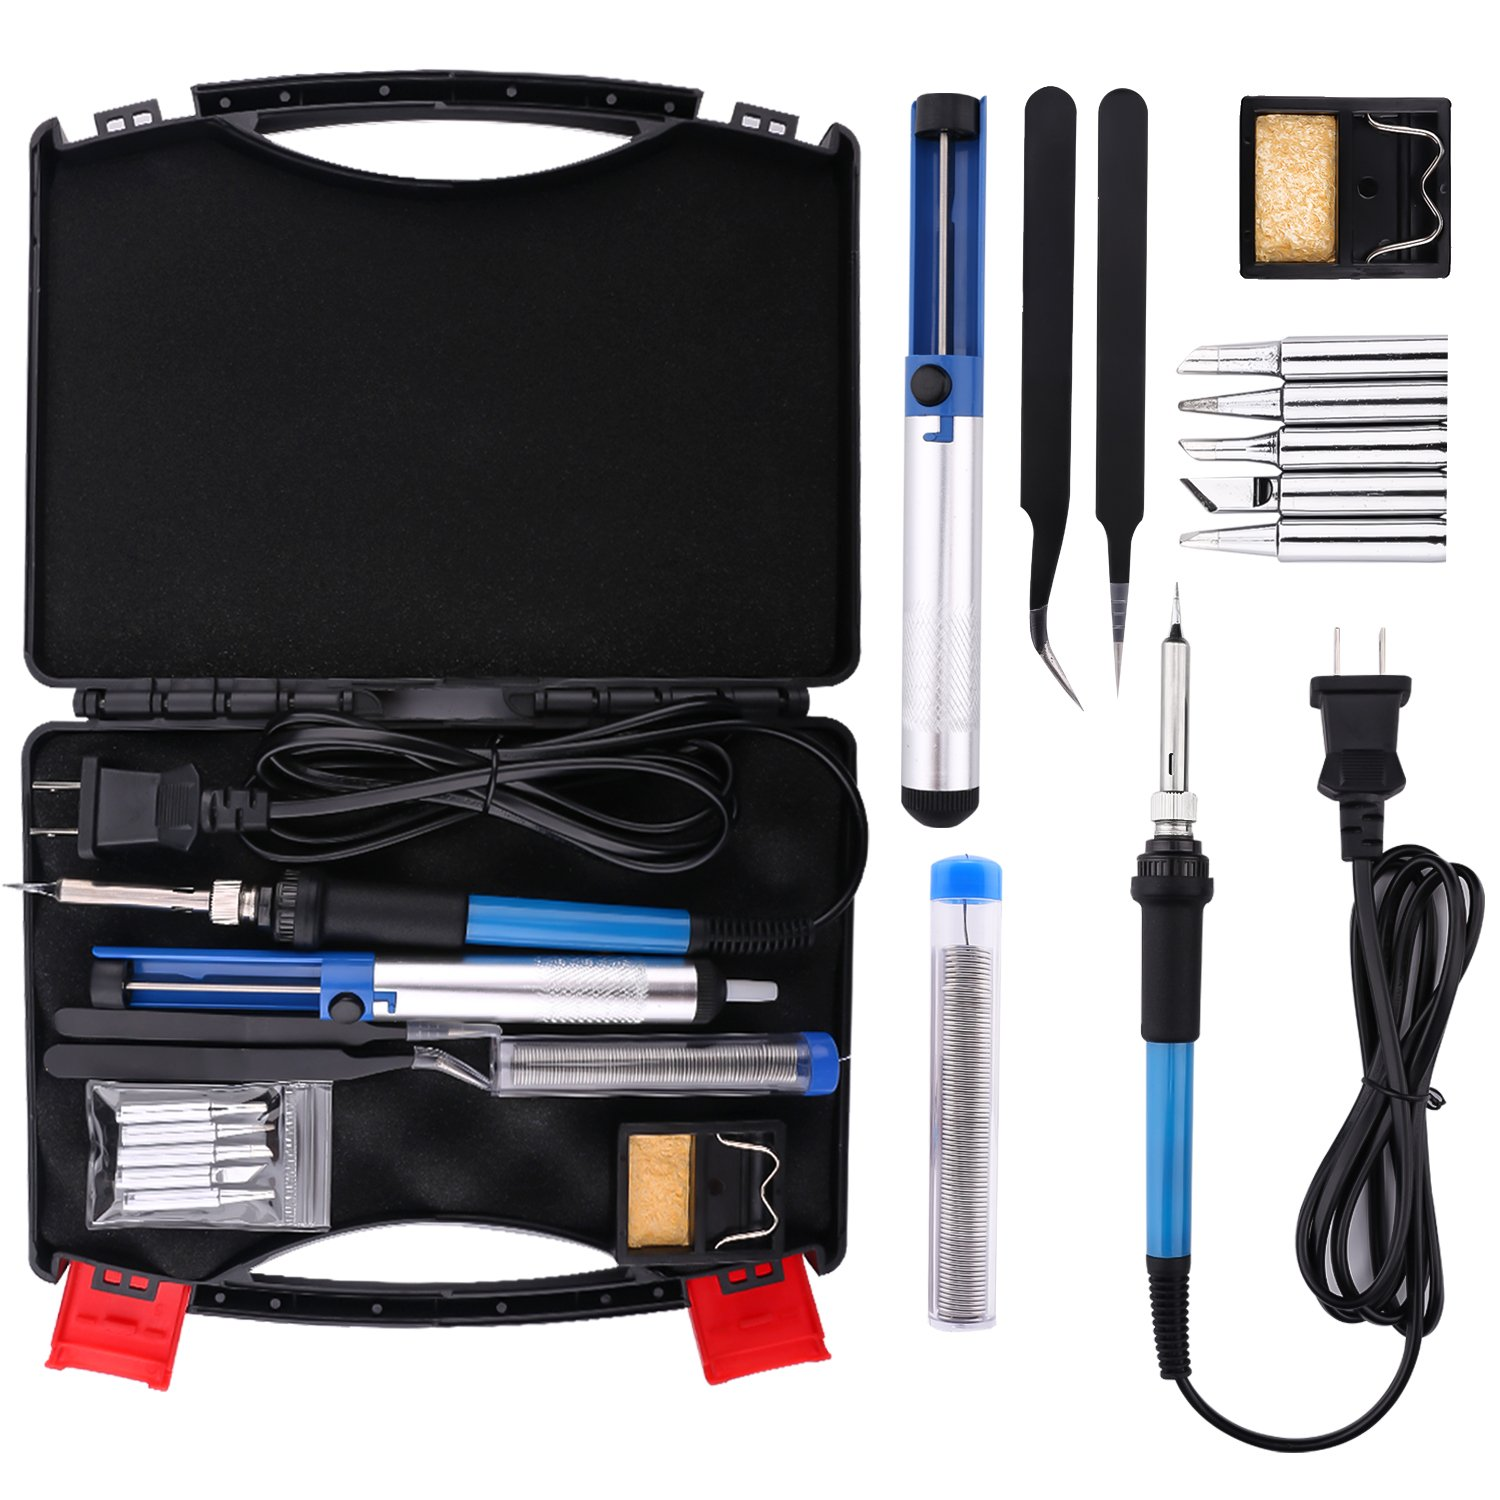 Electric Soldering Iron Kit - Housolution 60W 110V Temperature Controller Welding Tool Outdoor Portable Repair Tool Handle DIY Kit with Carry Case, 5pcs Tips, Desoldering Pump, Stand, Tweezers (Black)